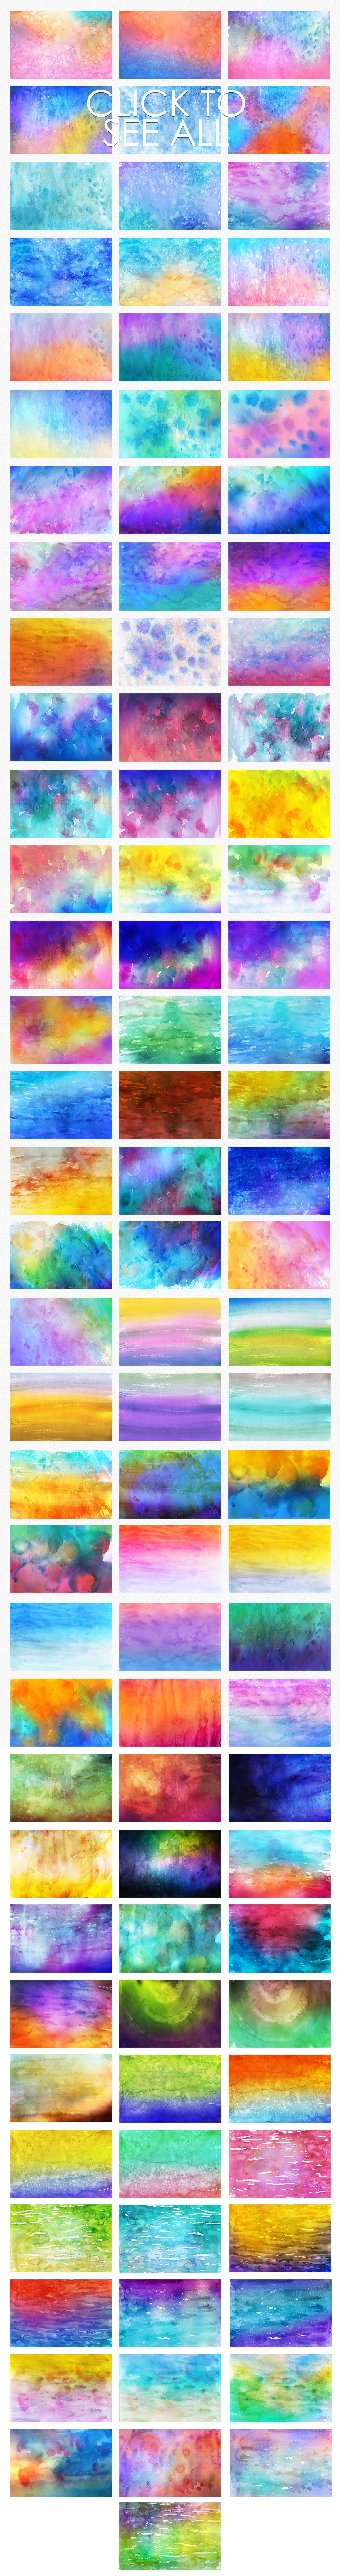 540+ Watercolor Backgrounds Bundle - 544 Items. Only $18! - 100 watercolor backgrounds prev 4 o